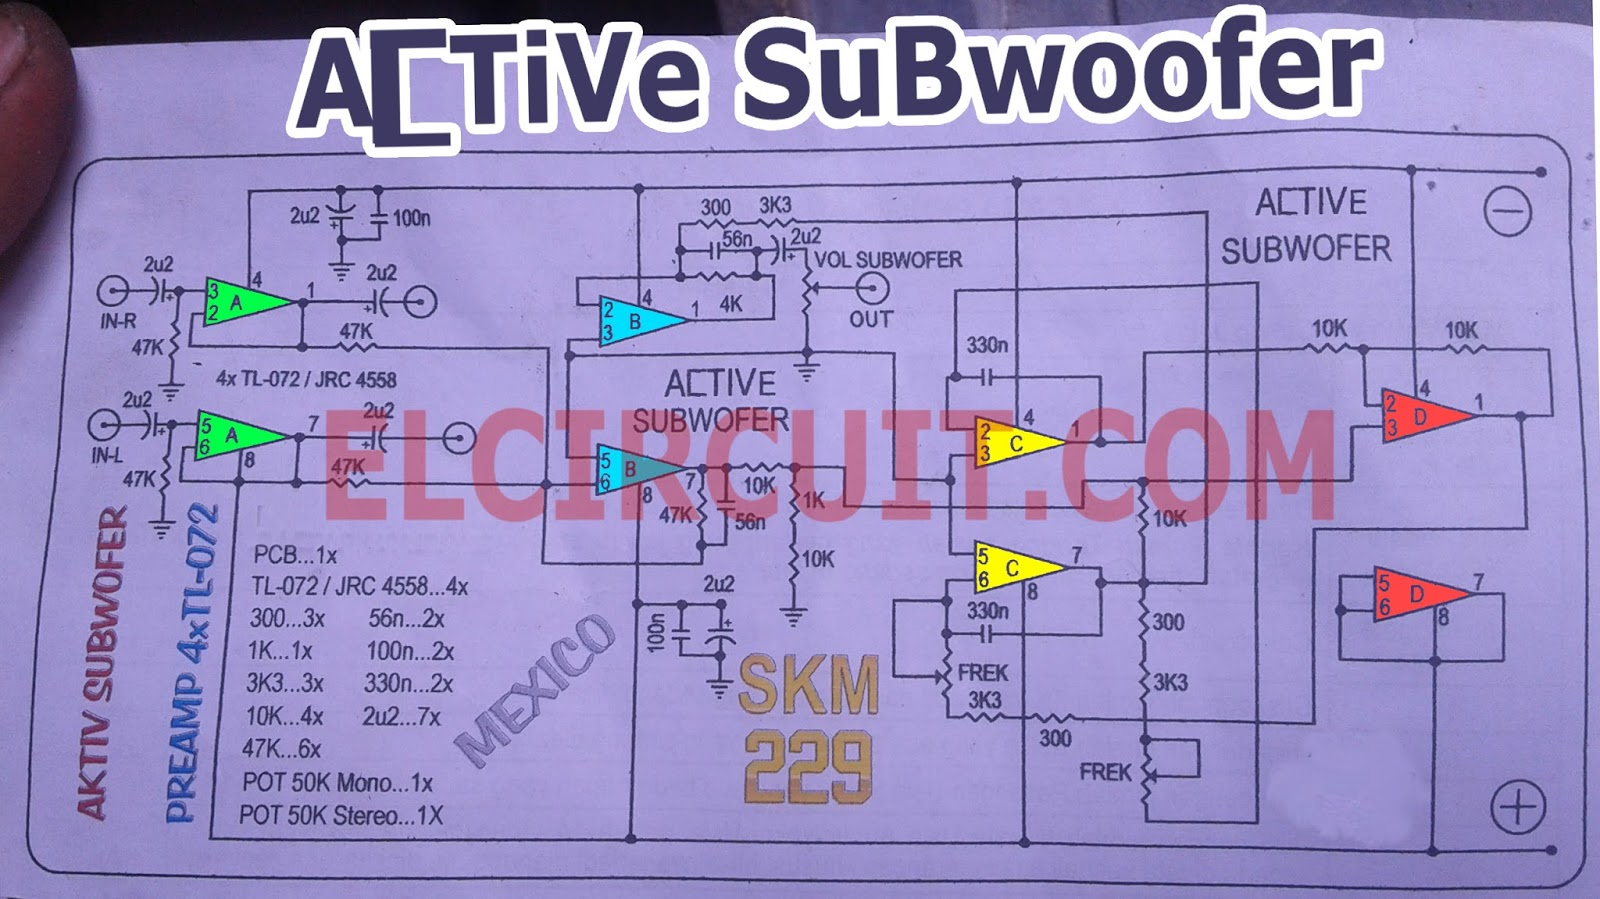 8050 furthermore Kl60 as well 12volt 7 er Aku Sarj Devresi Bdx53 Akim Sinirlamali together with Active Subwoofer Circuit Tl082 Tl072 likewise The Cheap Small Hearing Aids Project. on transistor pre amp